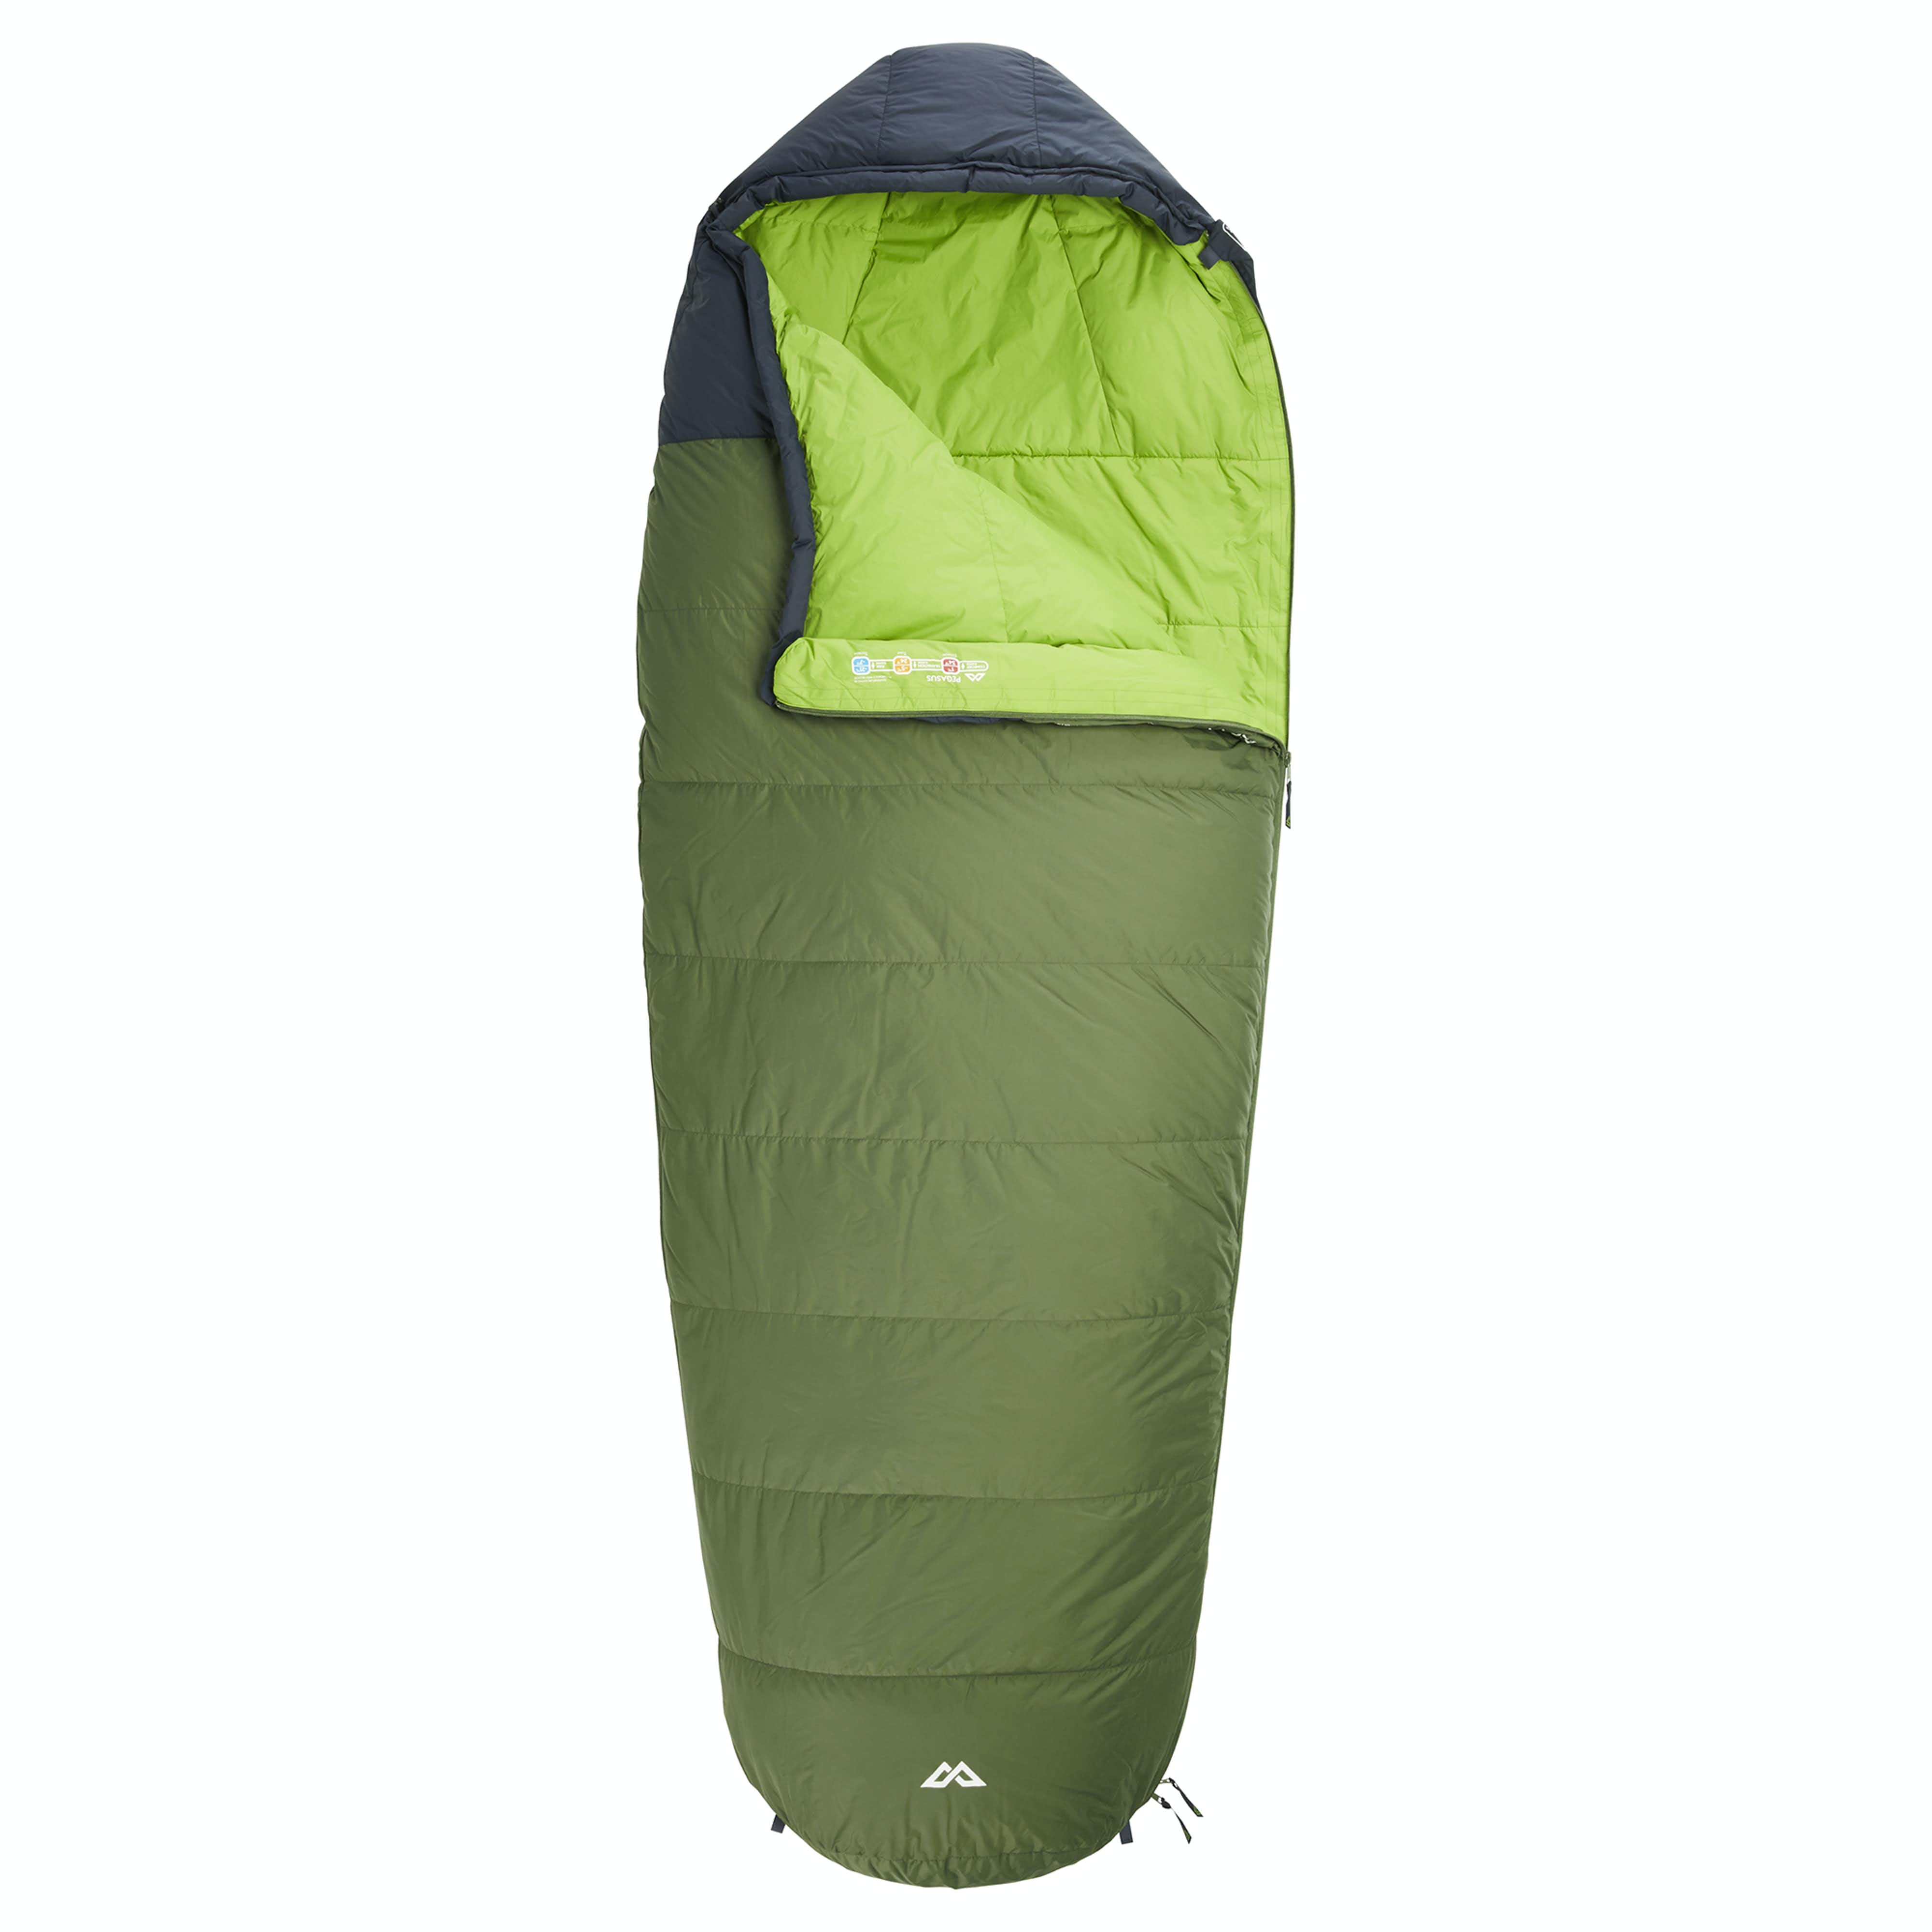 Sleeping Bag | Down Sleeping Bag for Hiking & Camping | NZ